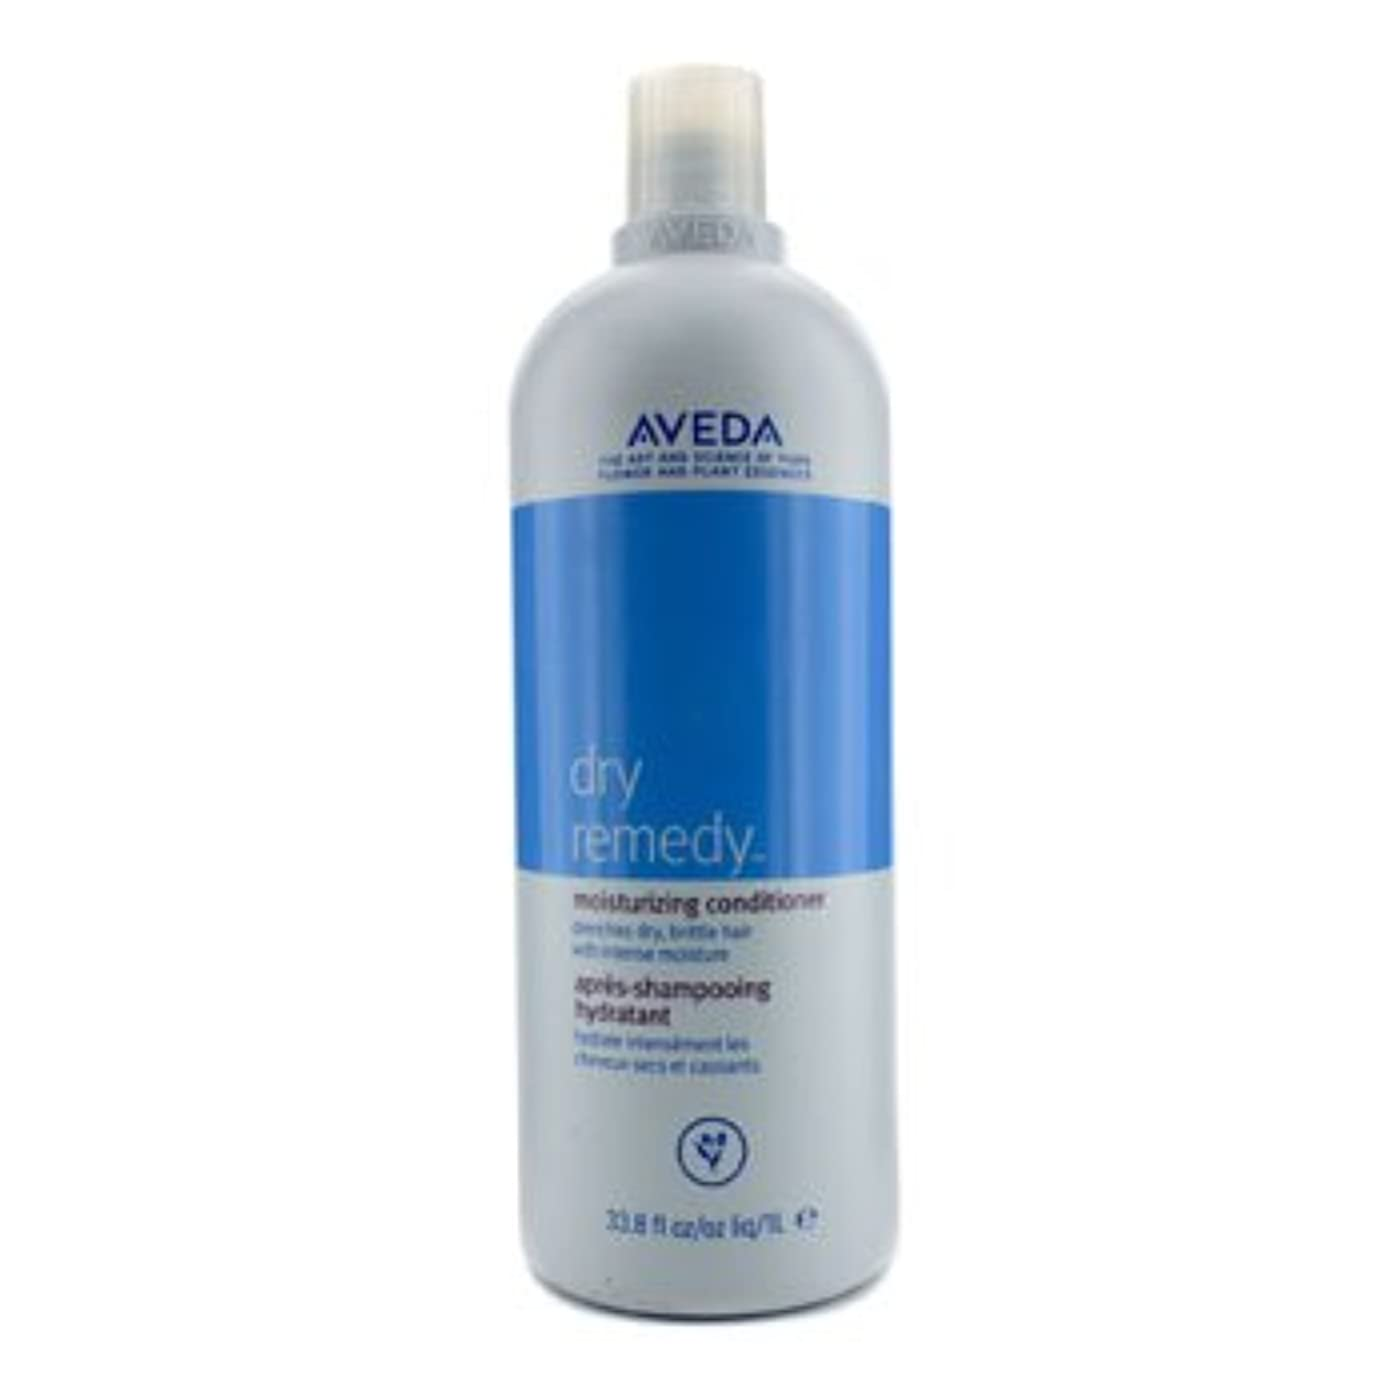 指ファランクスモザイク[Aveda] Dry Remedy Moisturizing Conditioner - For Drenches Dry Brittle Hair (New Packaging) 1000ml/33.8oz